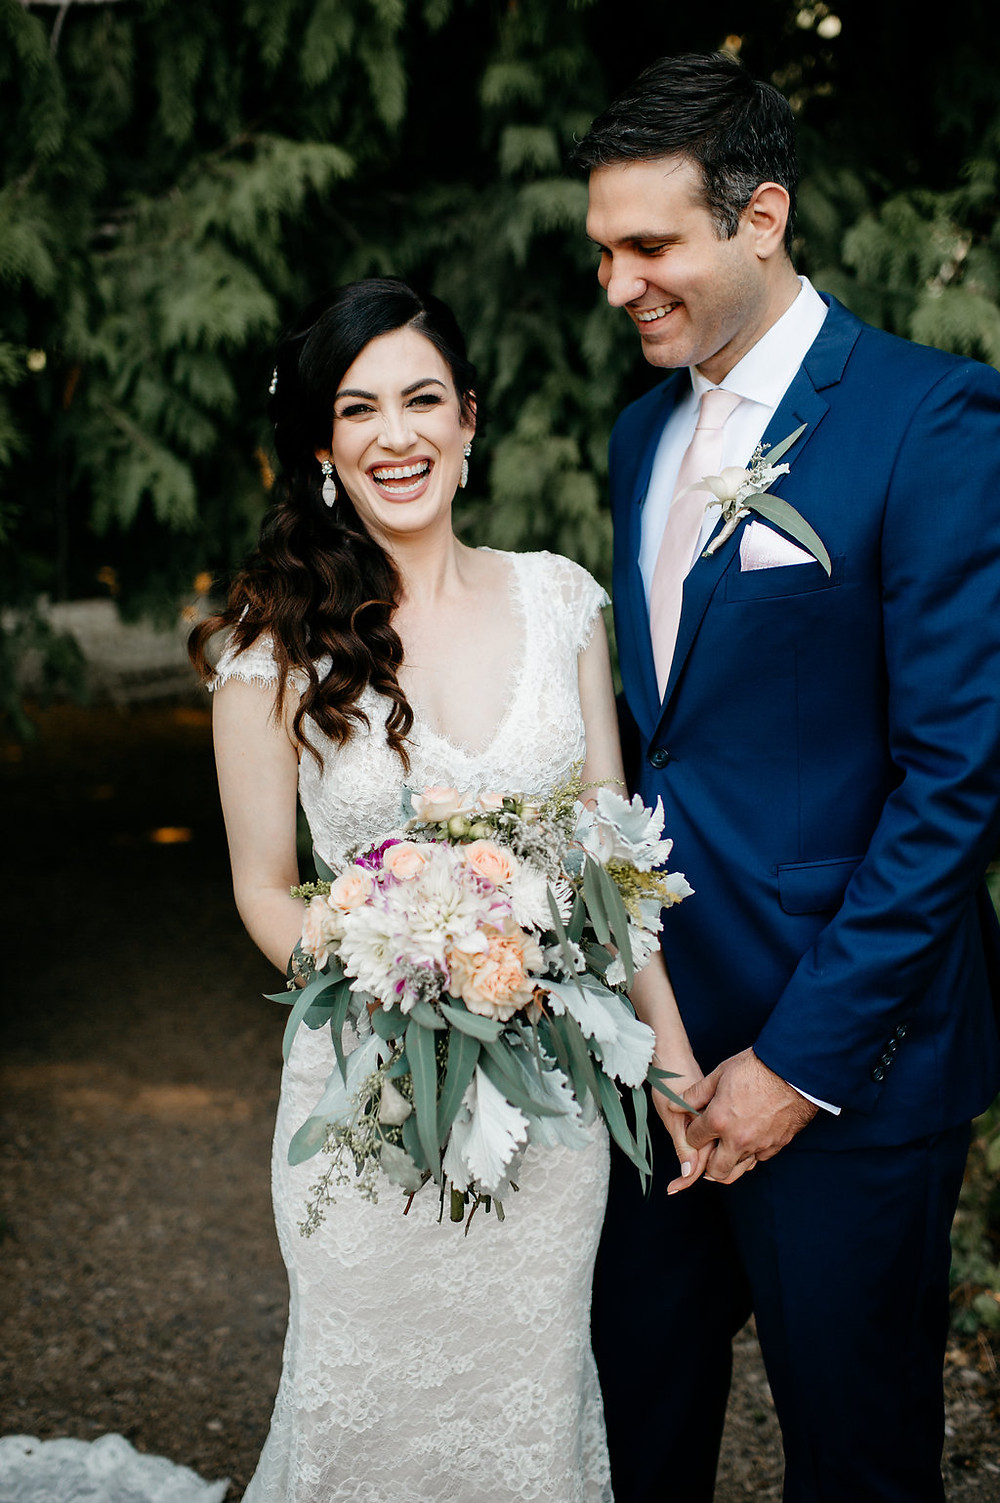 Snohomish Wedding | PNW Inspired, Ceremony in the Woods